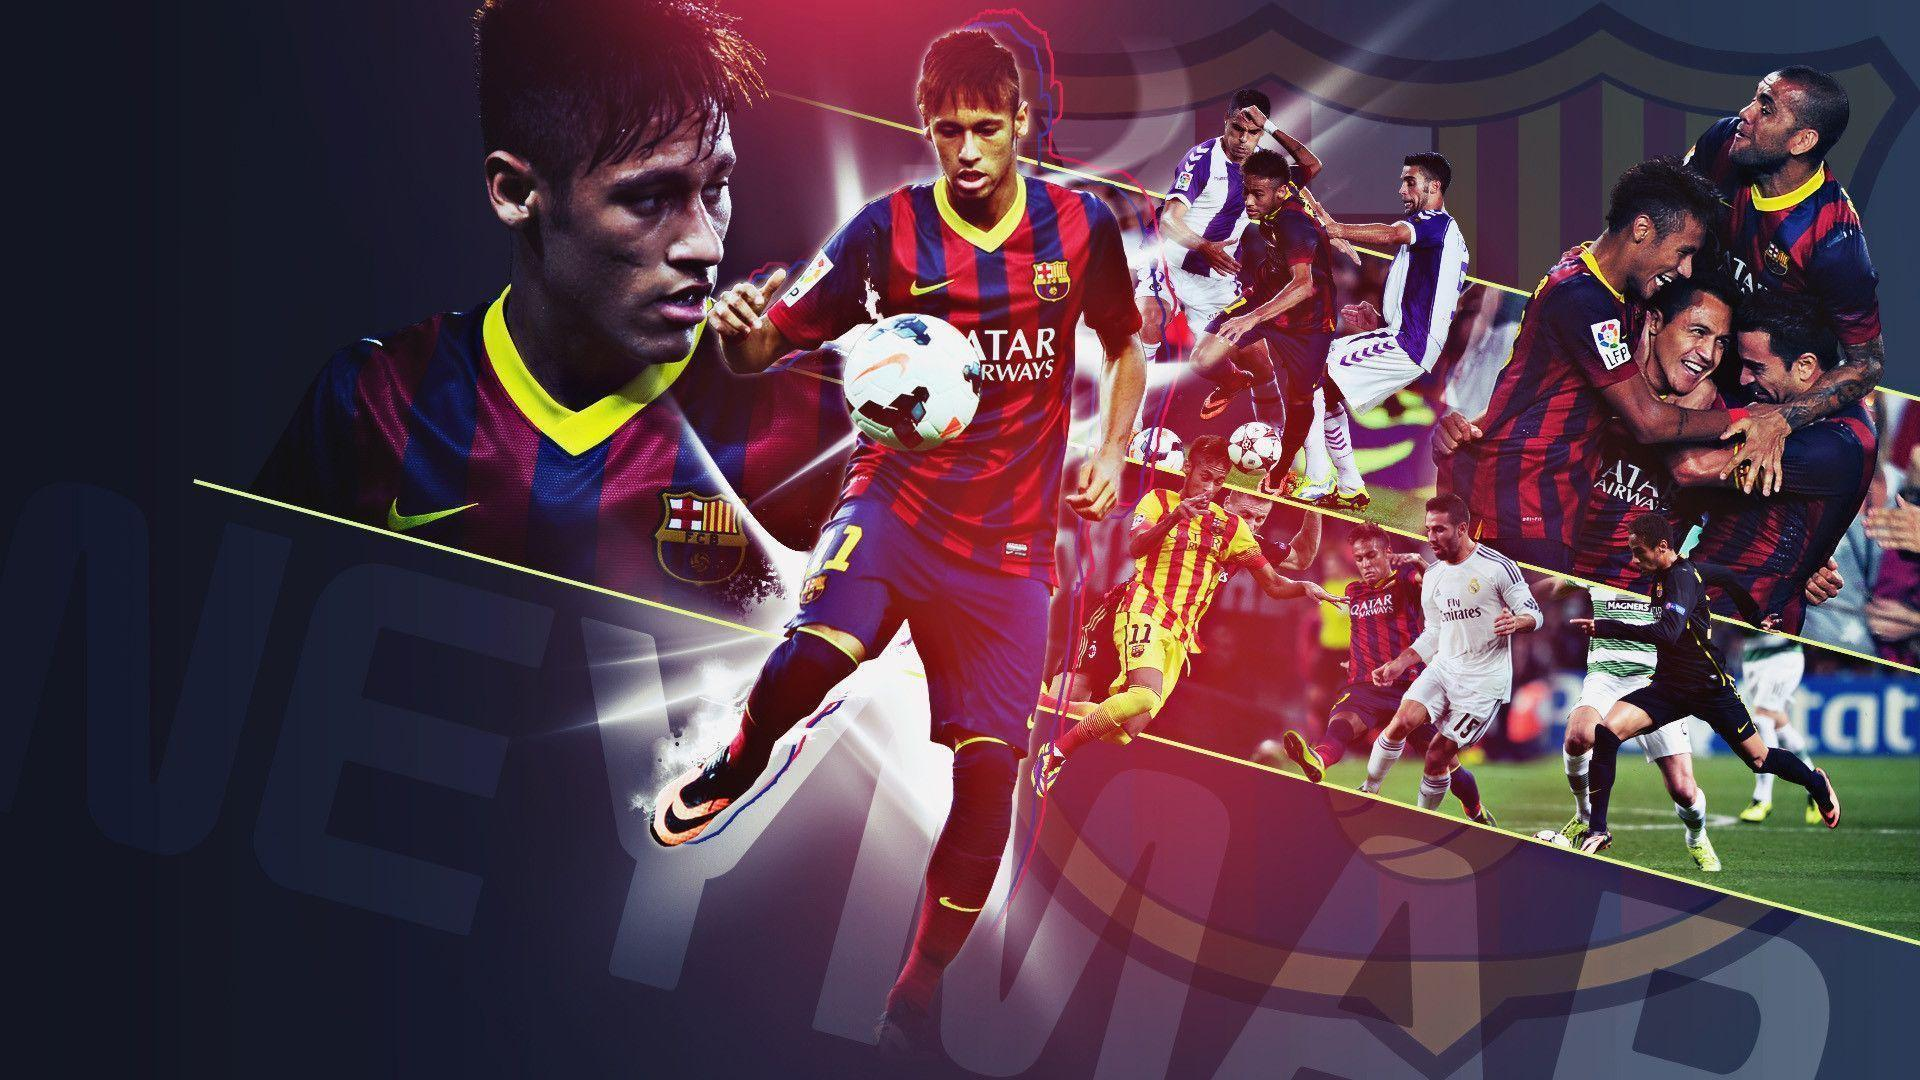 Neymar FC Barcelona image for wallpapers